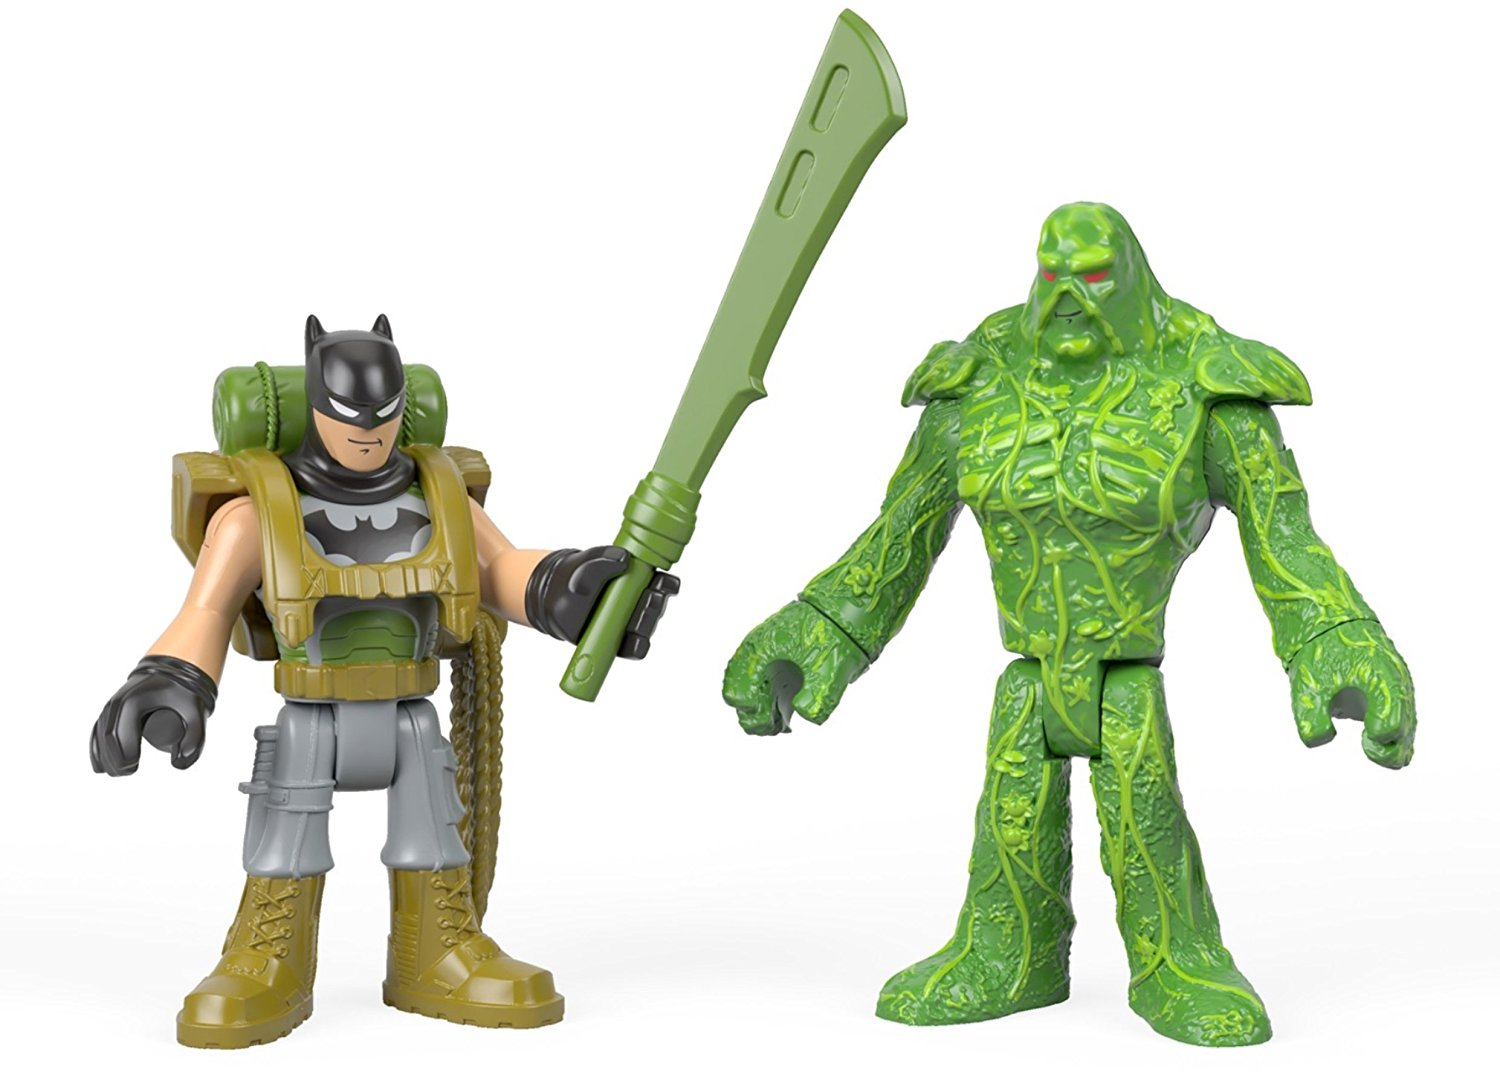 Fisher-Price Imaginext DC Super Friends Batman & Swamp Thing Figures $5.88 On Amazon